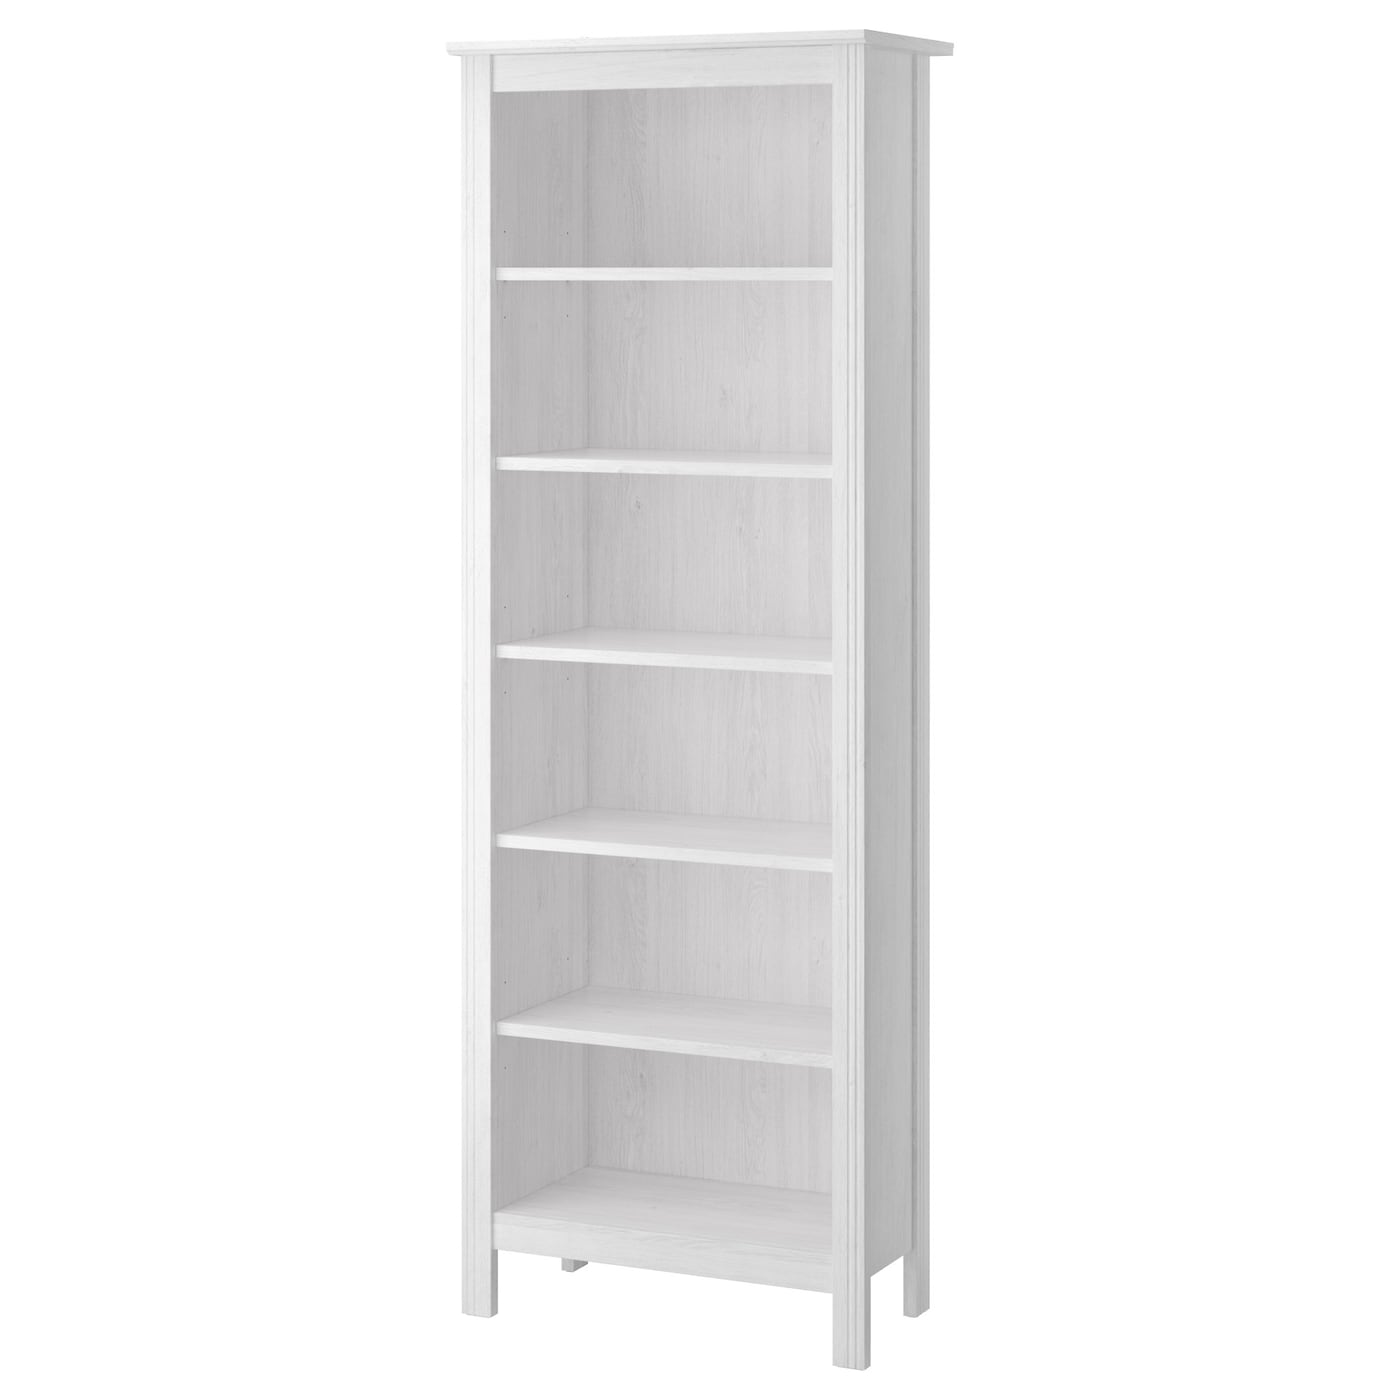 profile bookshelf home amazon ikea small cheap organizer with low slanted thin bookshelves toy bookcases at b furniture walmart